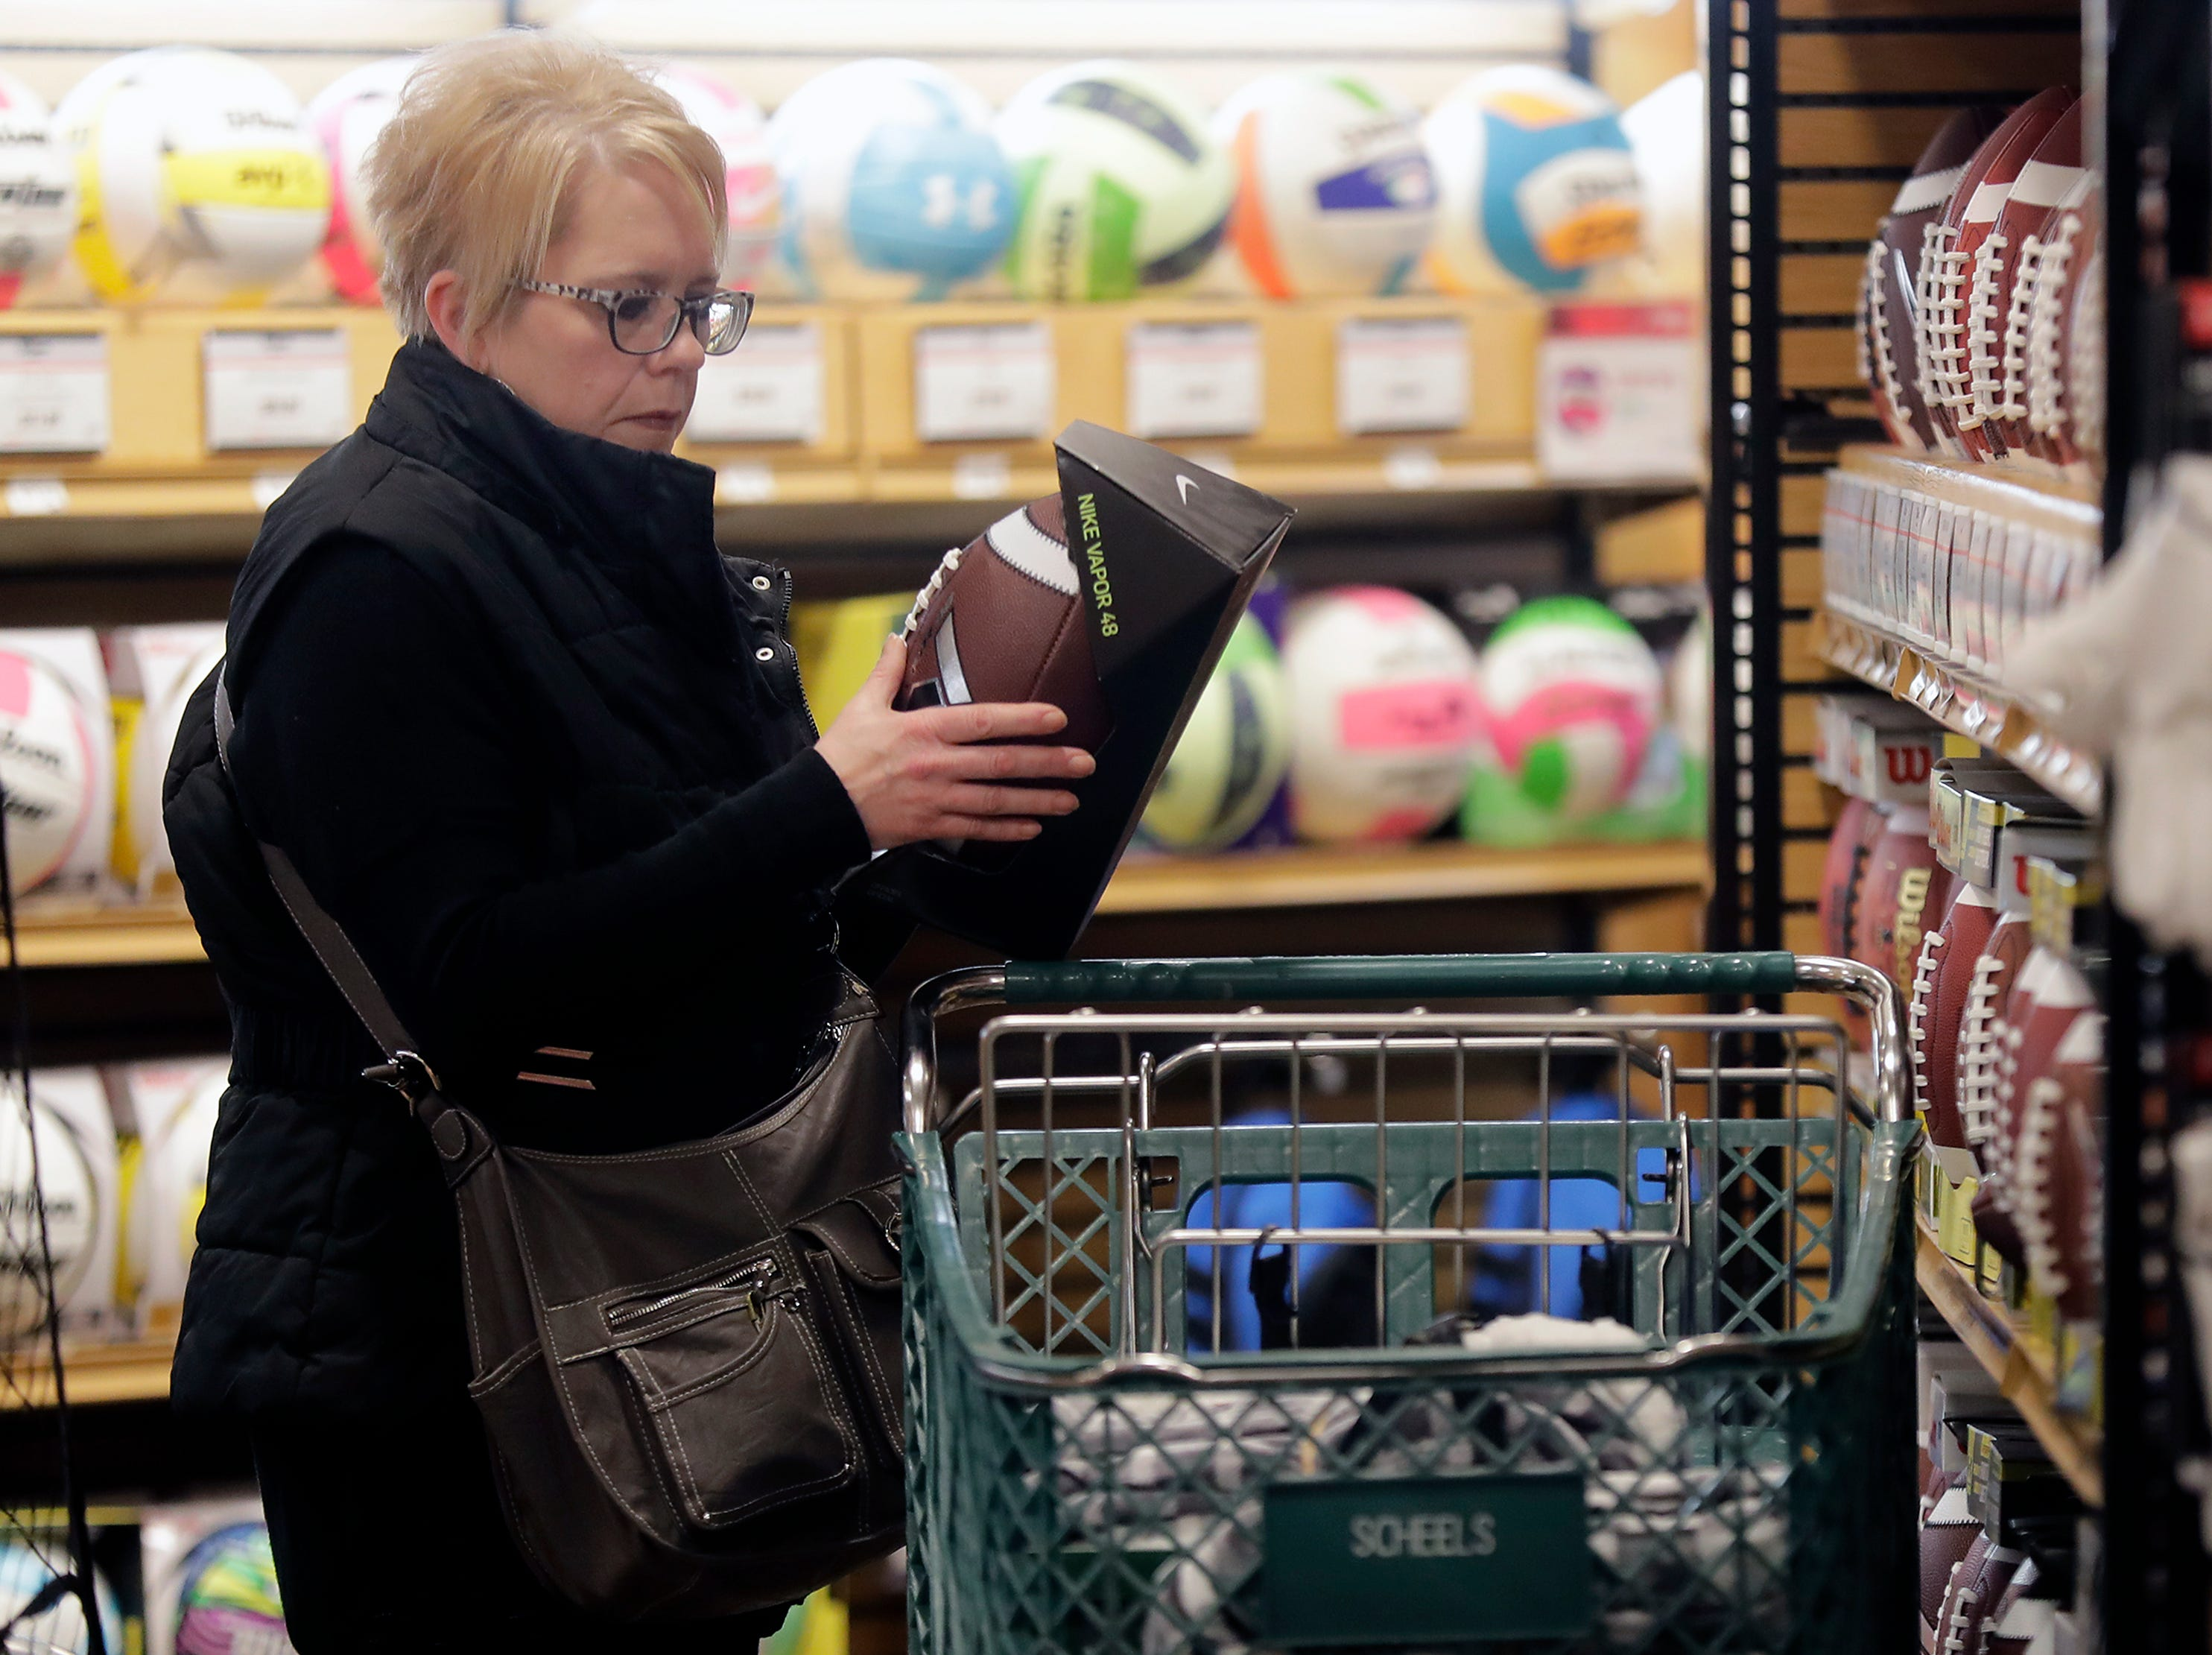 Julie Vandehey shops on Black Friday at Scheels on Friday, Nov. 23, 2018 in Grand Chute, Wis